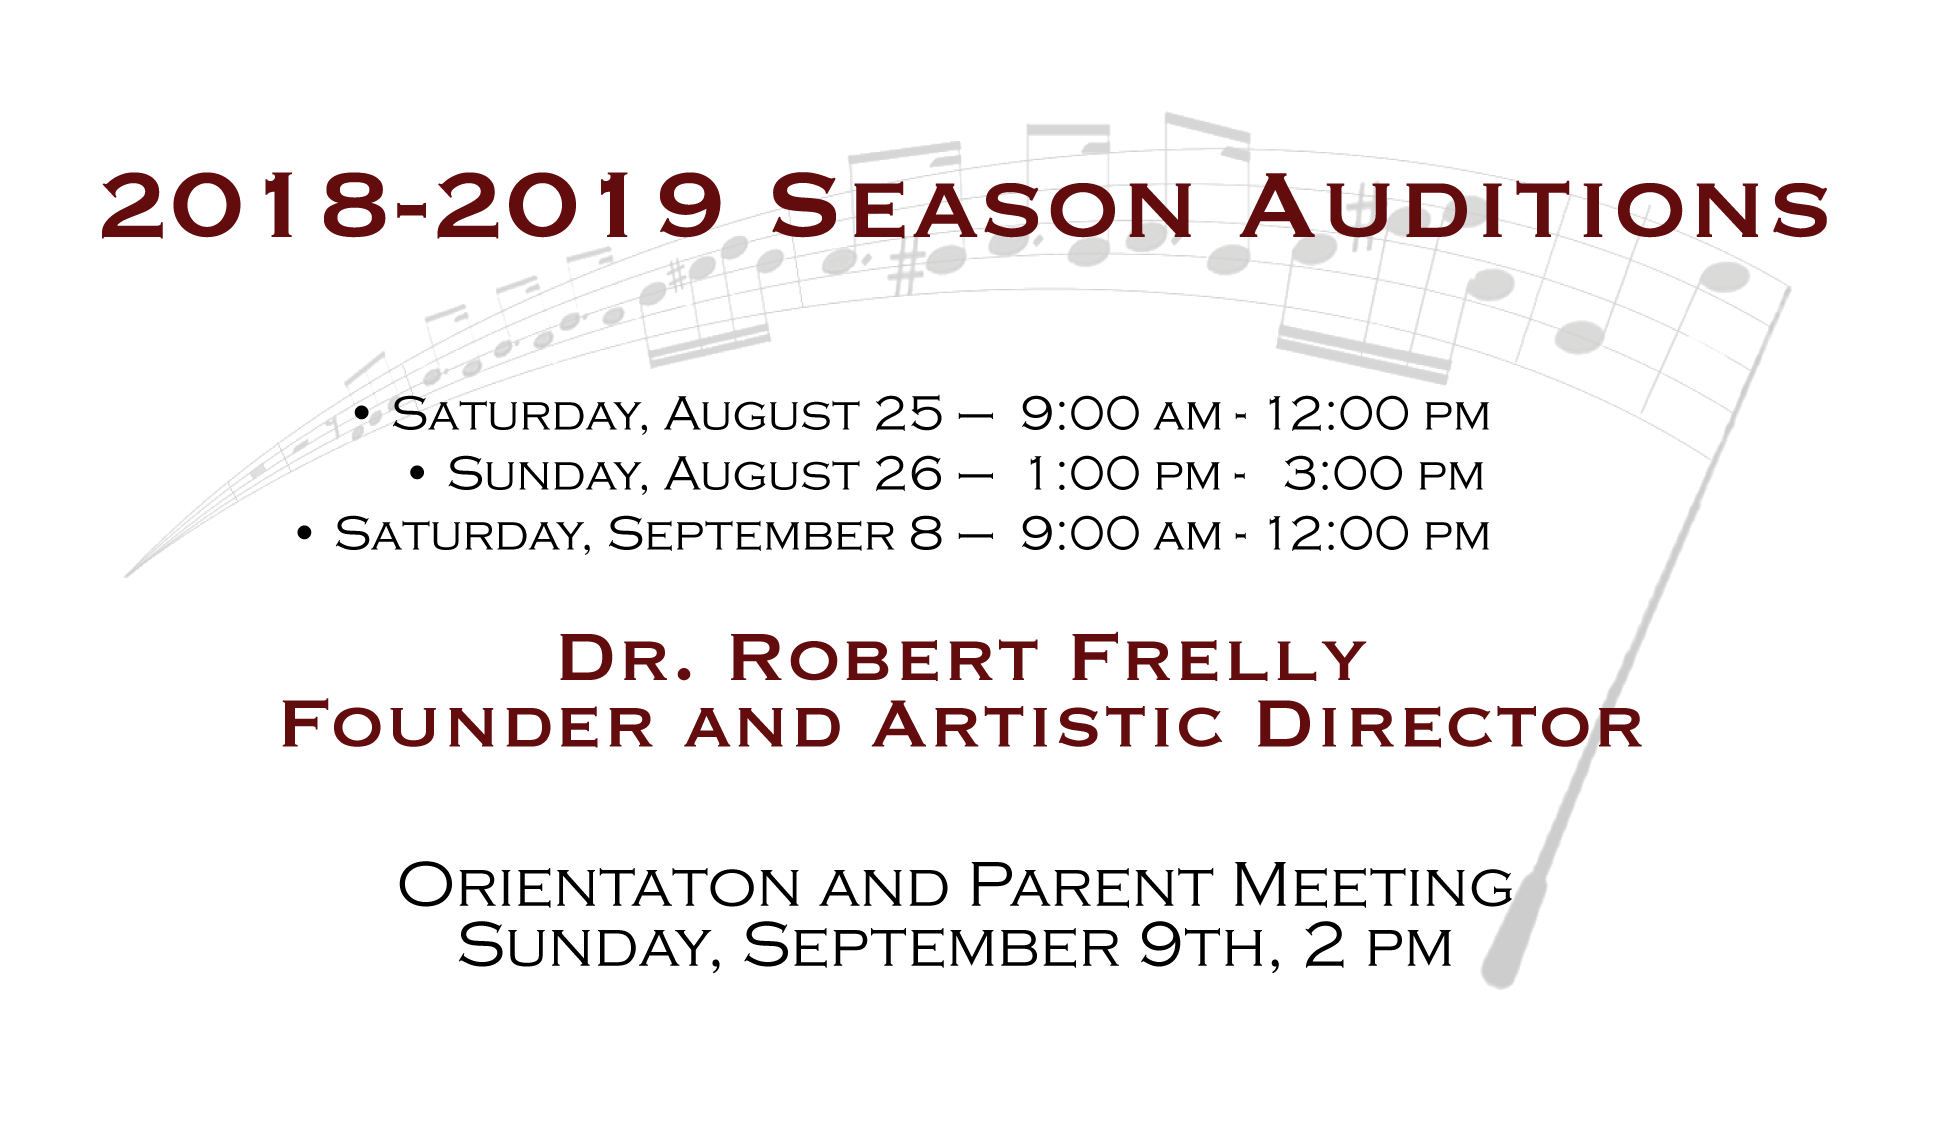 2018-2019 Auditions Fall only